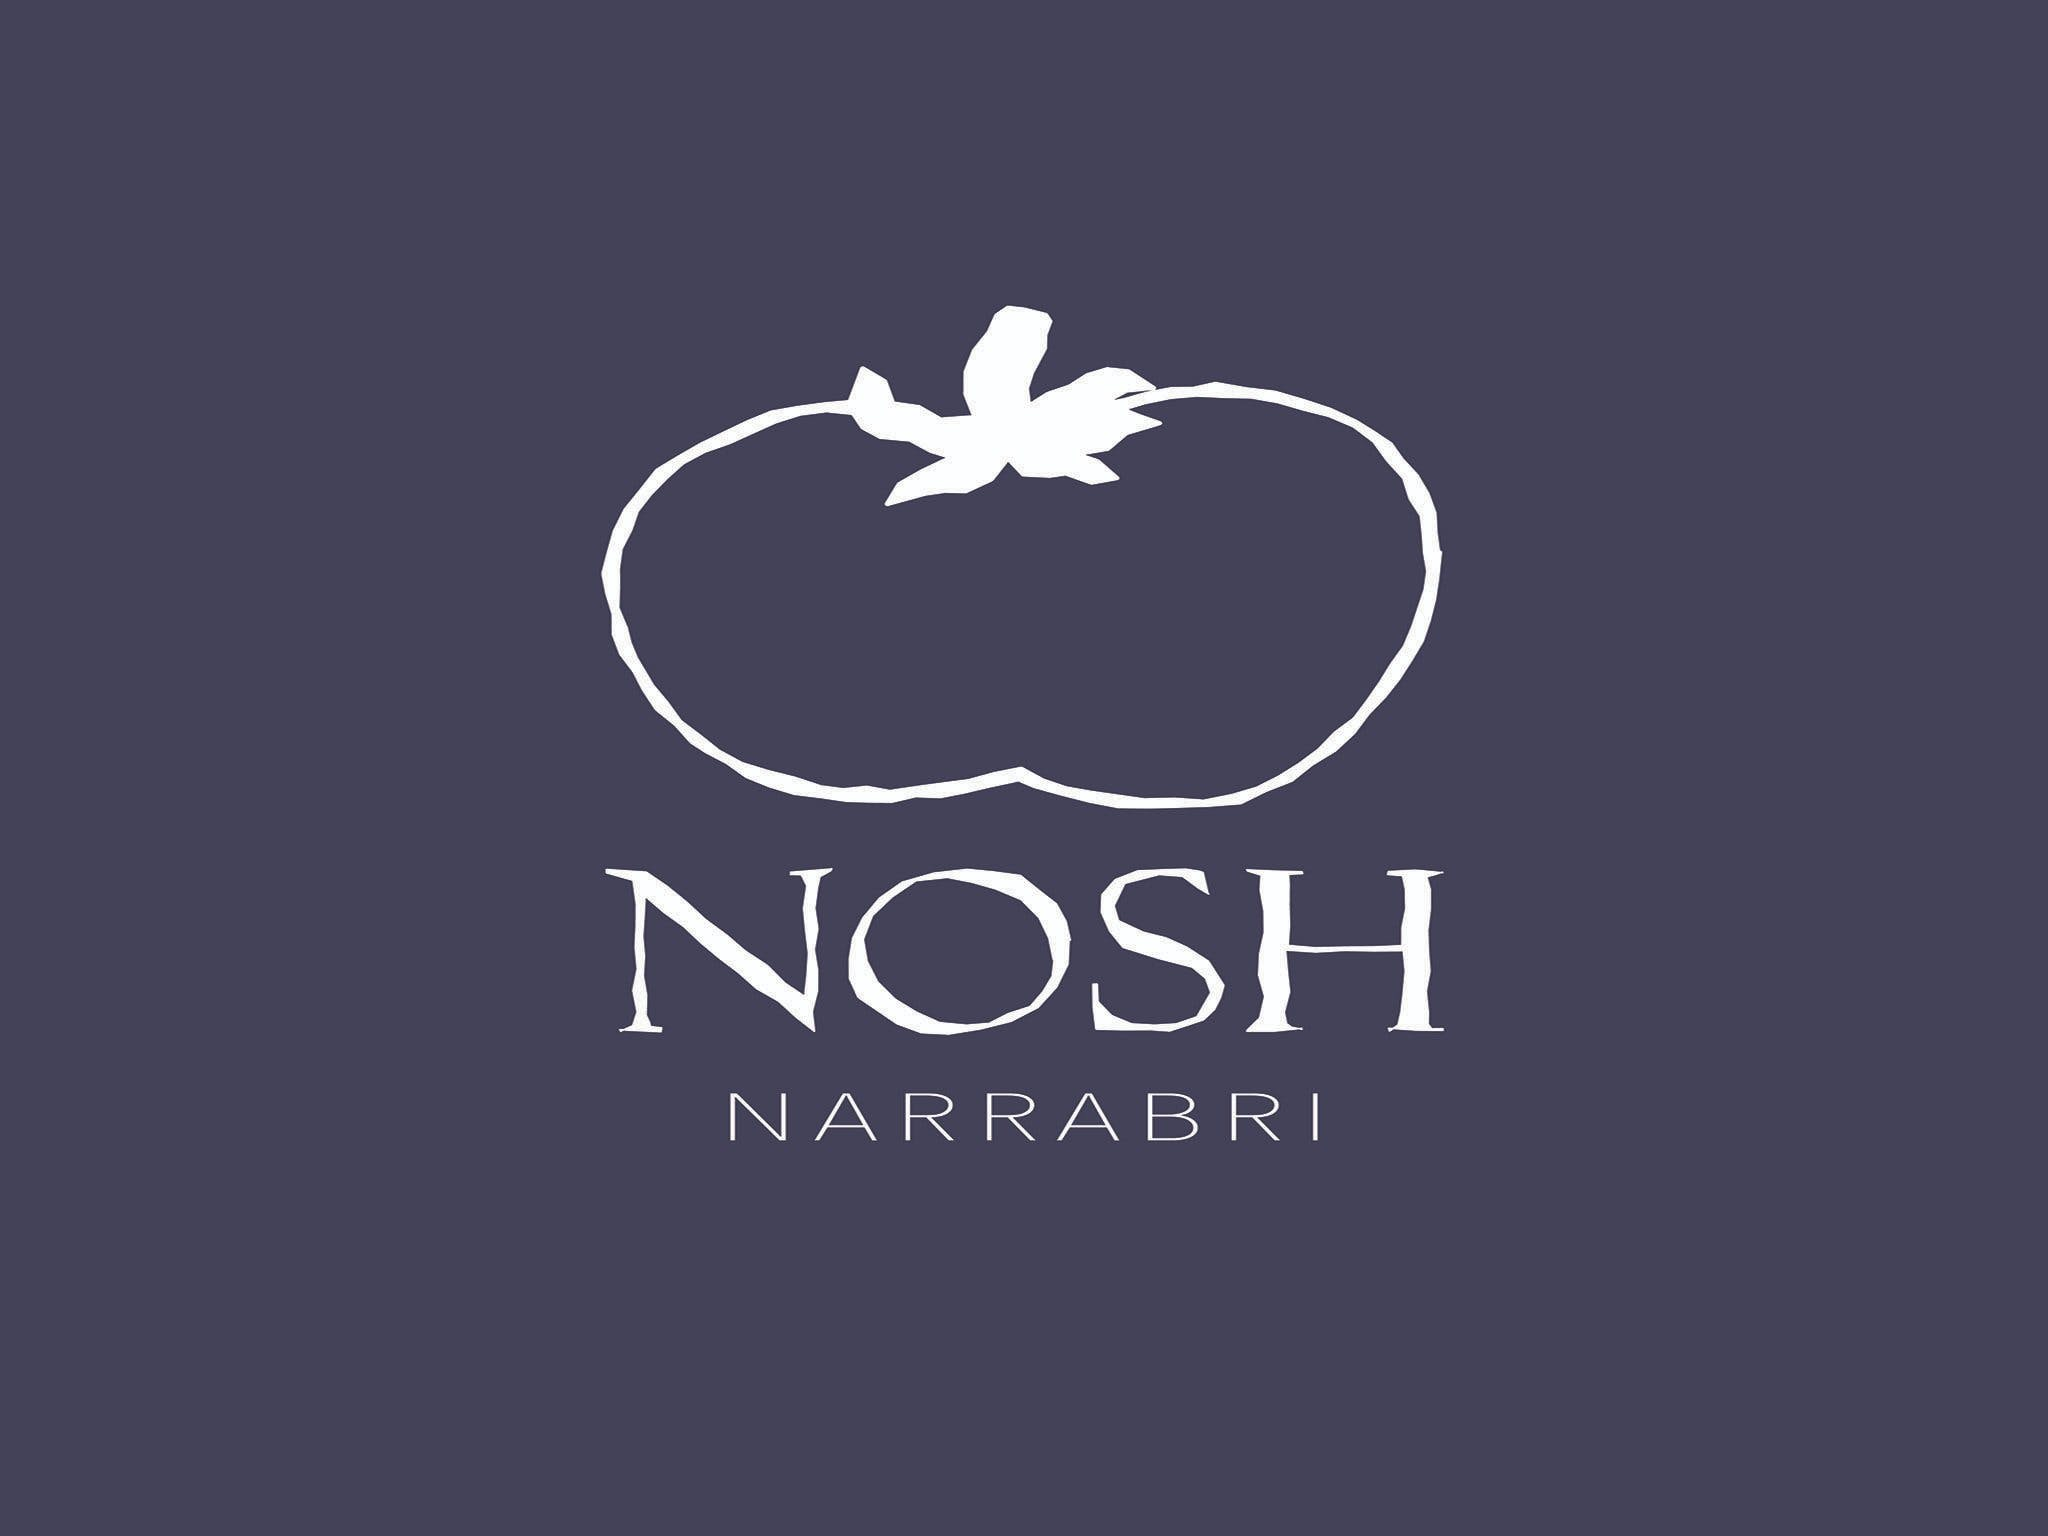 Nosh Narrabri - Accommodation Resorts